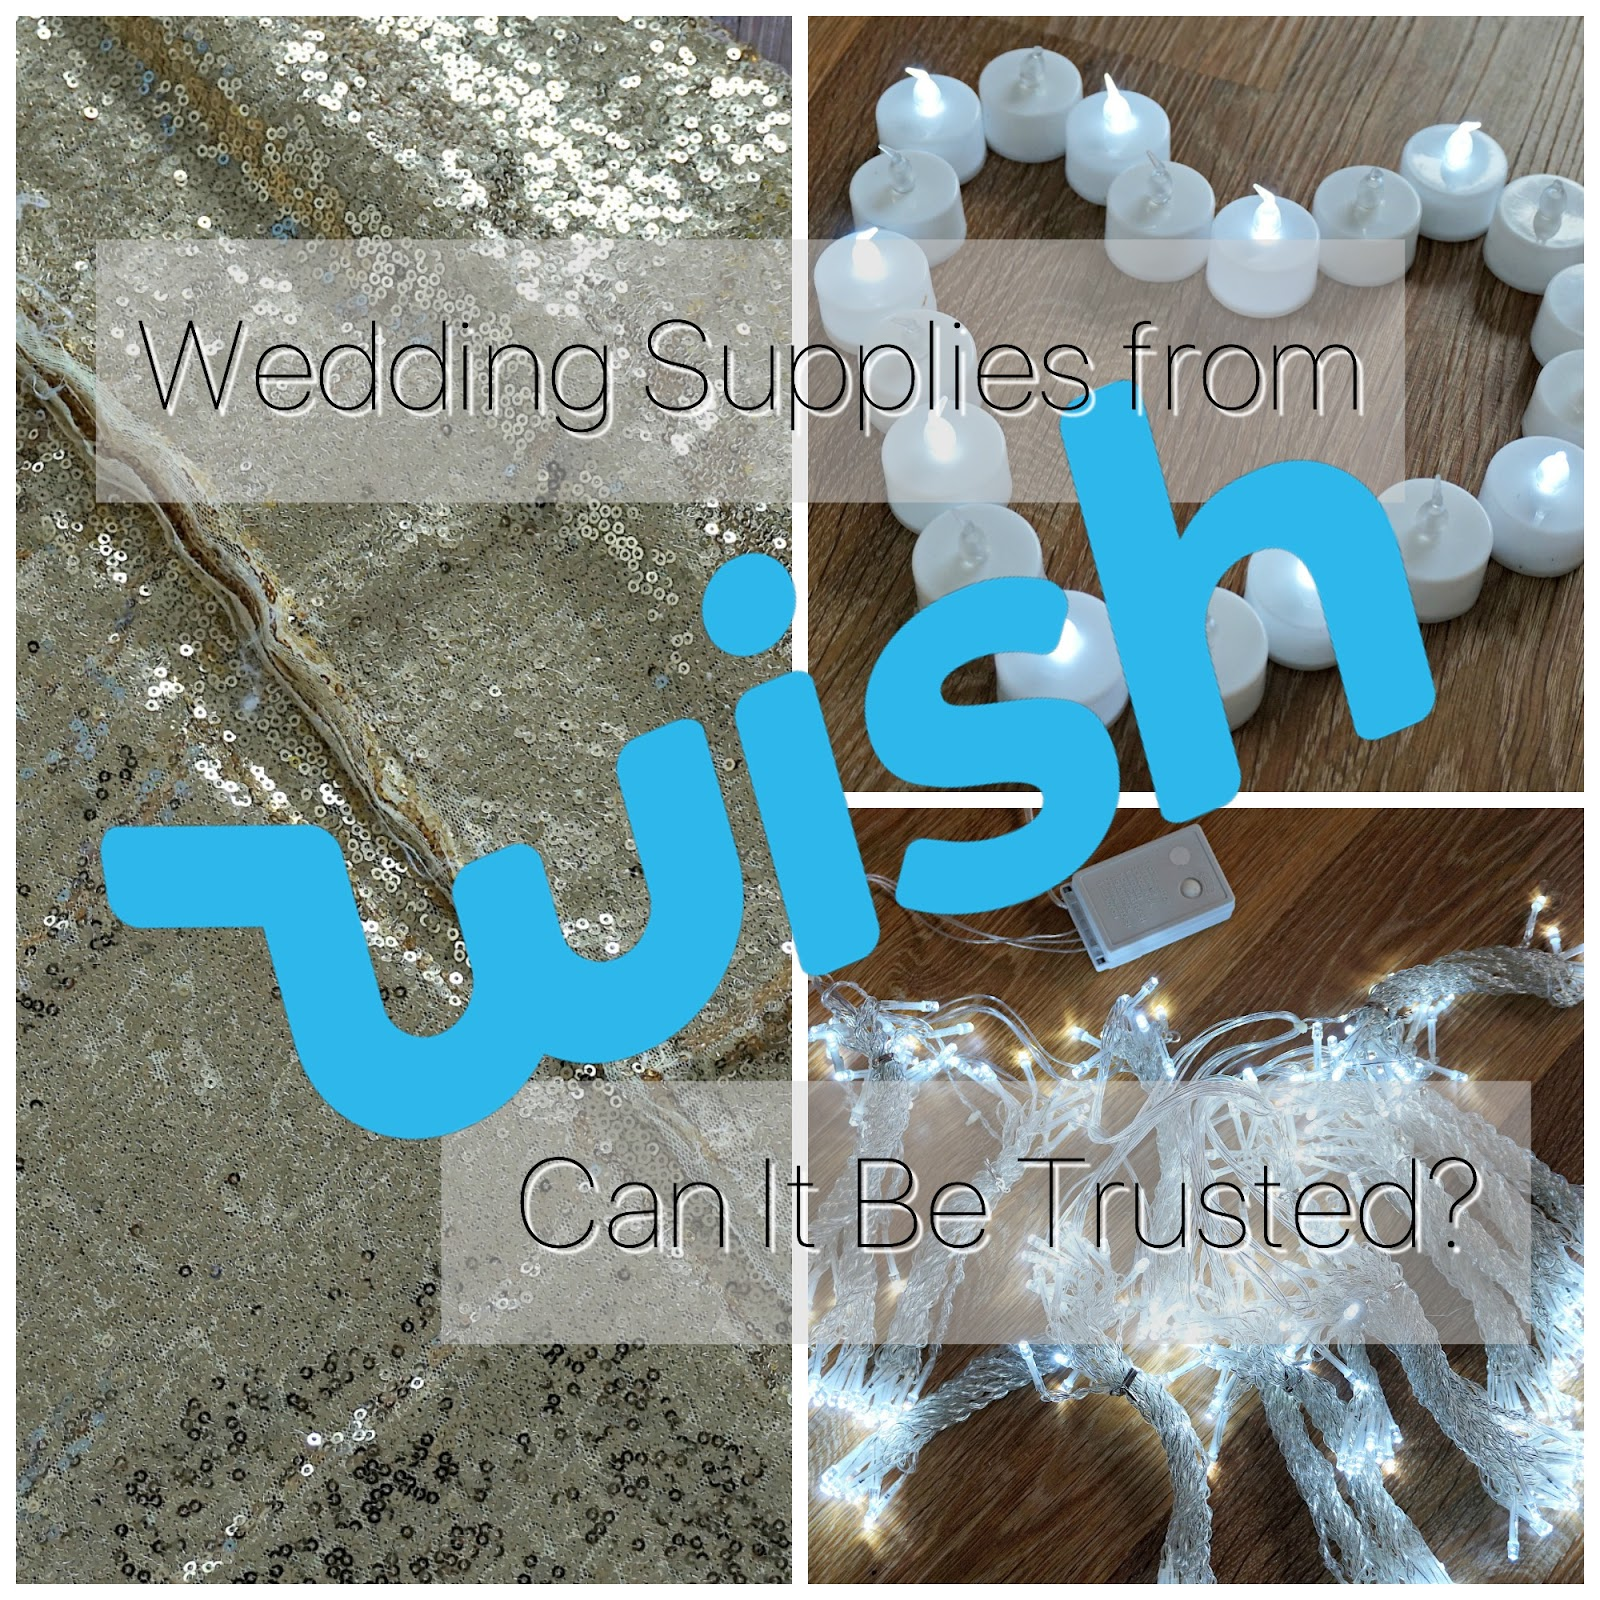 Wedding supplies from wish can it be trusted jenna suth buying wedding supplies can be a pricey business theres lots of different options and sometimes you have to weigh up whether youre better off renting or solutioingenieria Choice Image